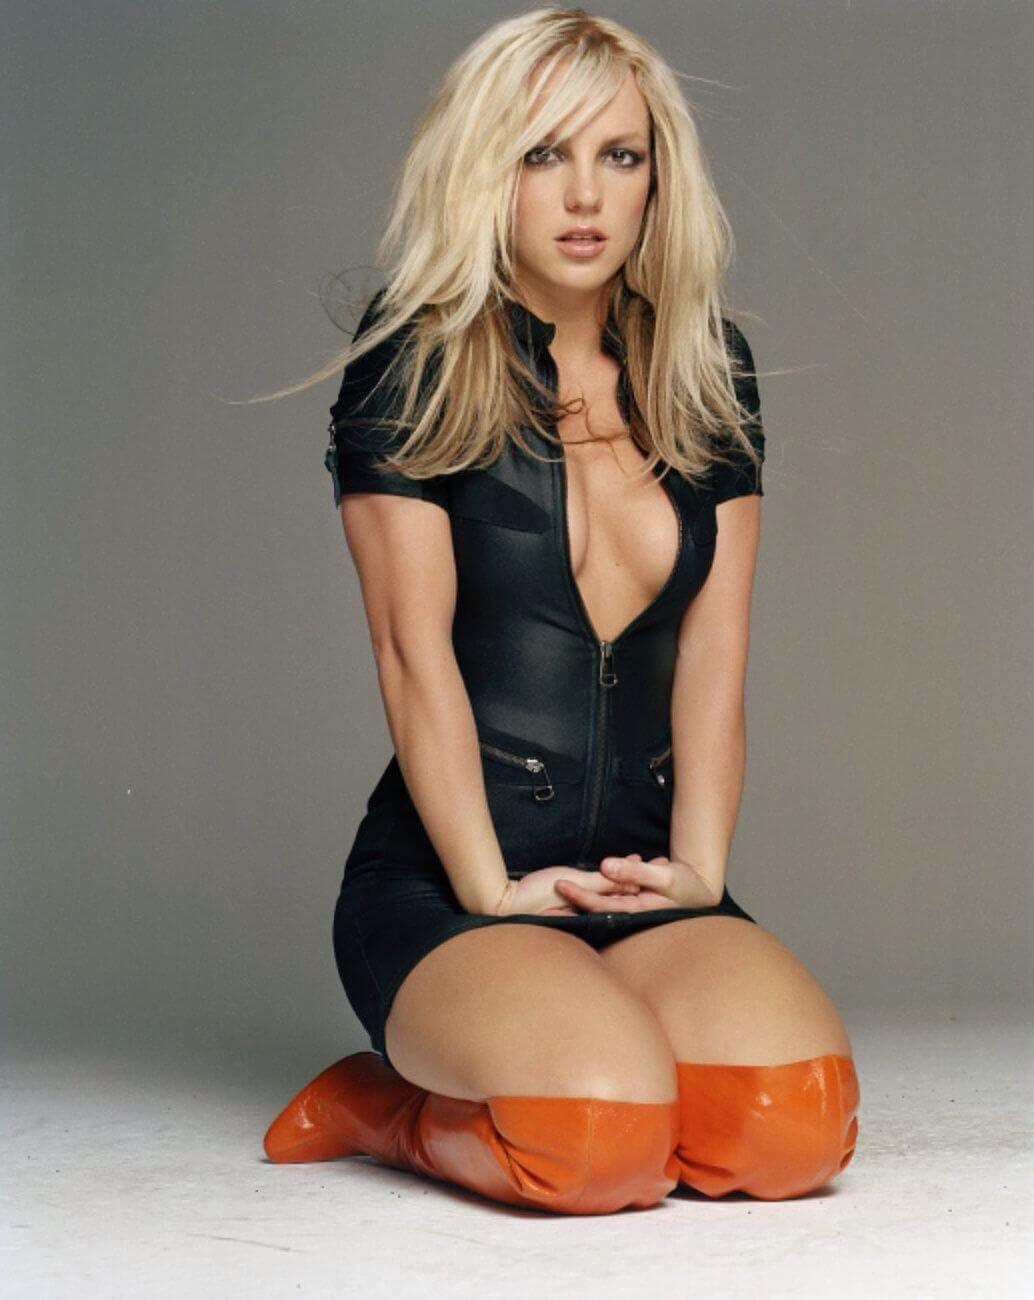 britney spears hot cleavage photo